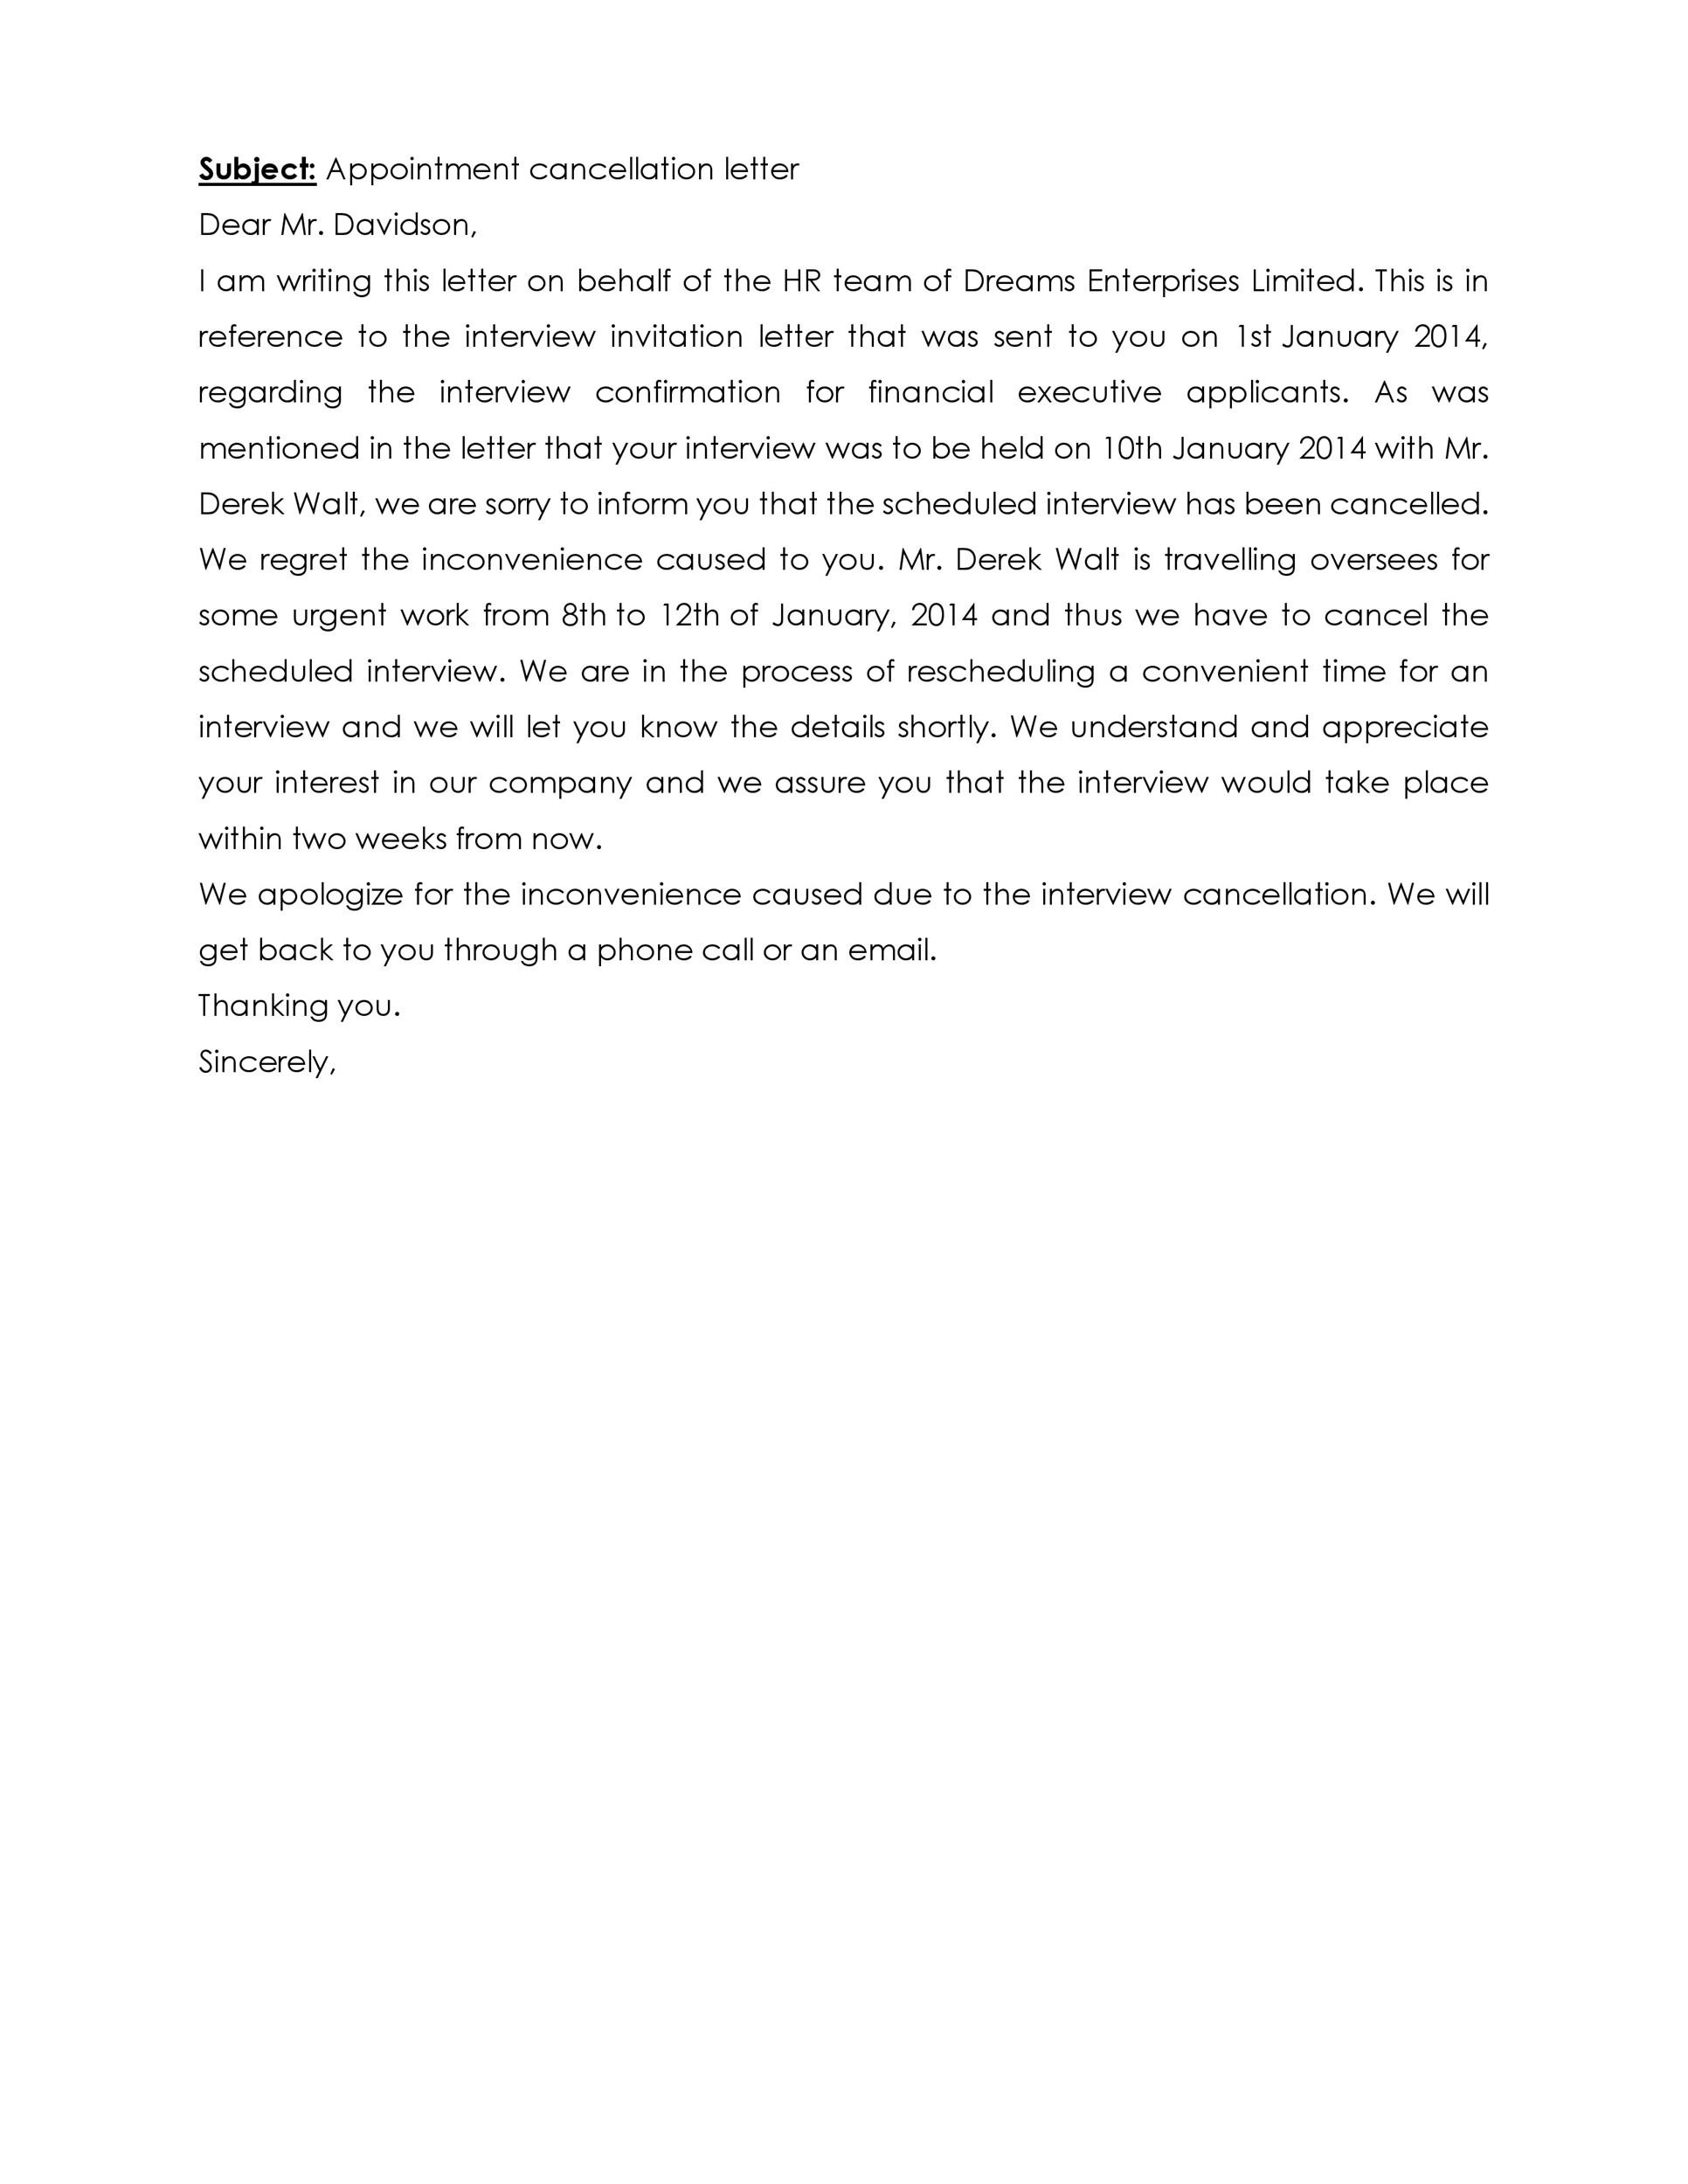 Free cancellation letter 04